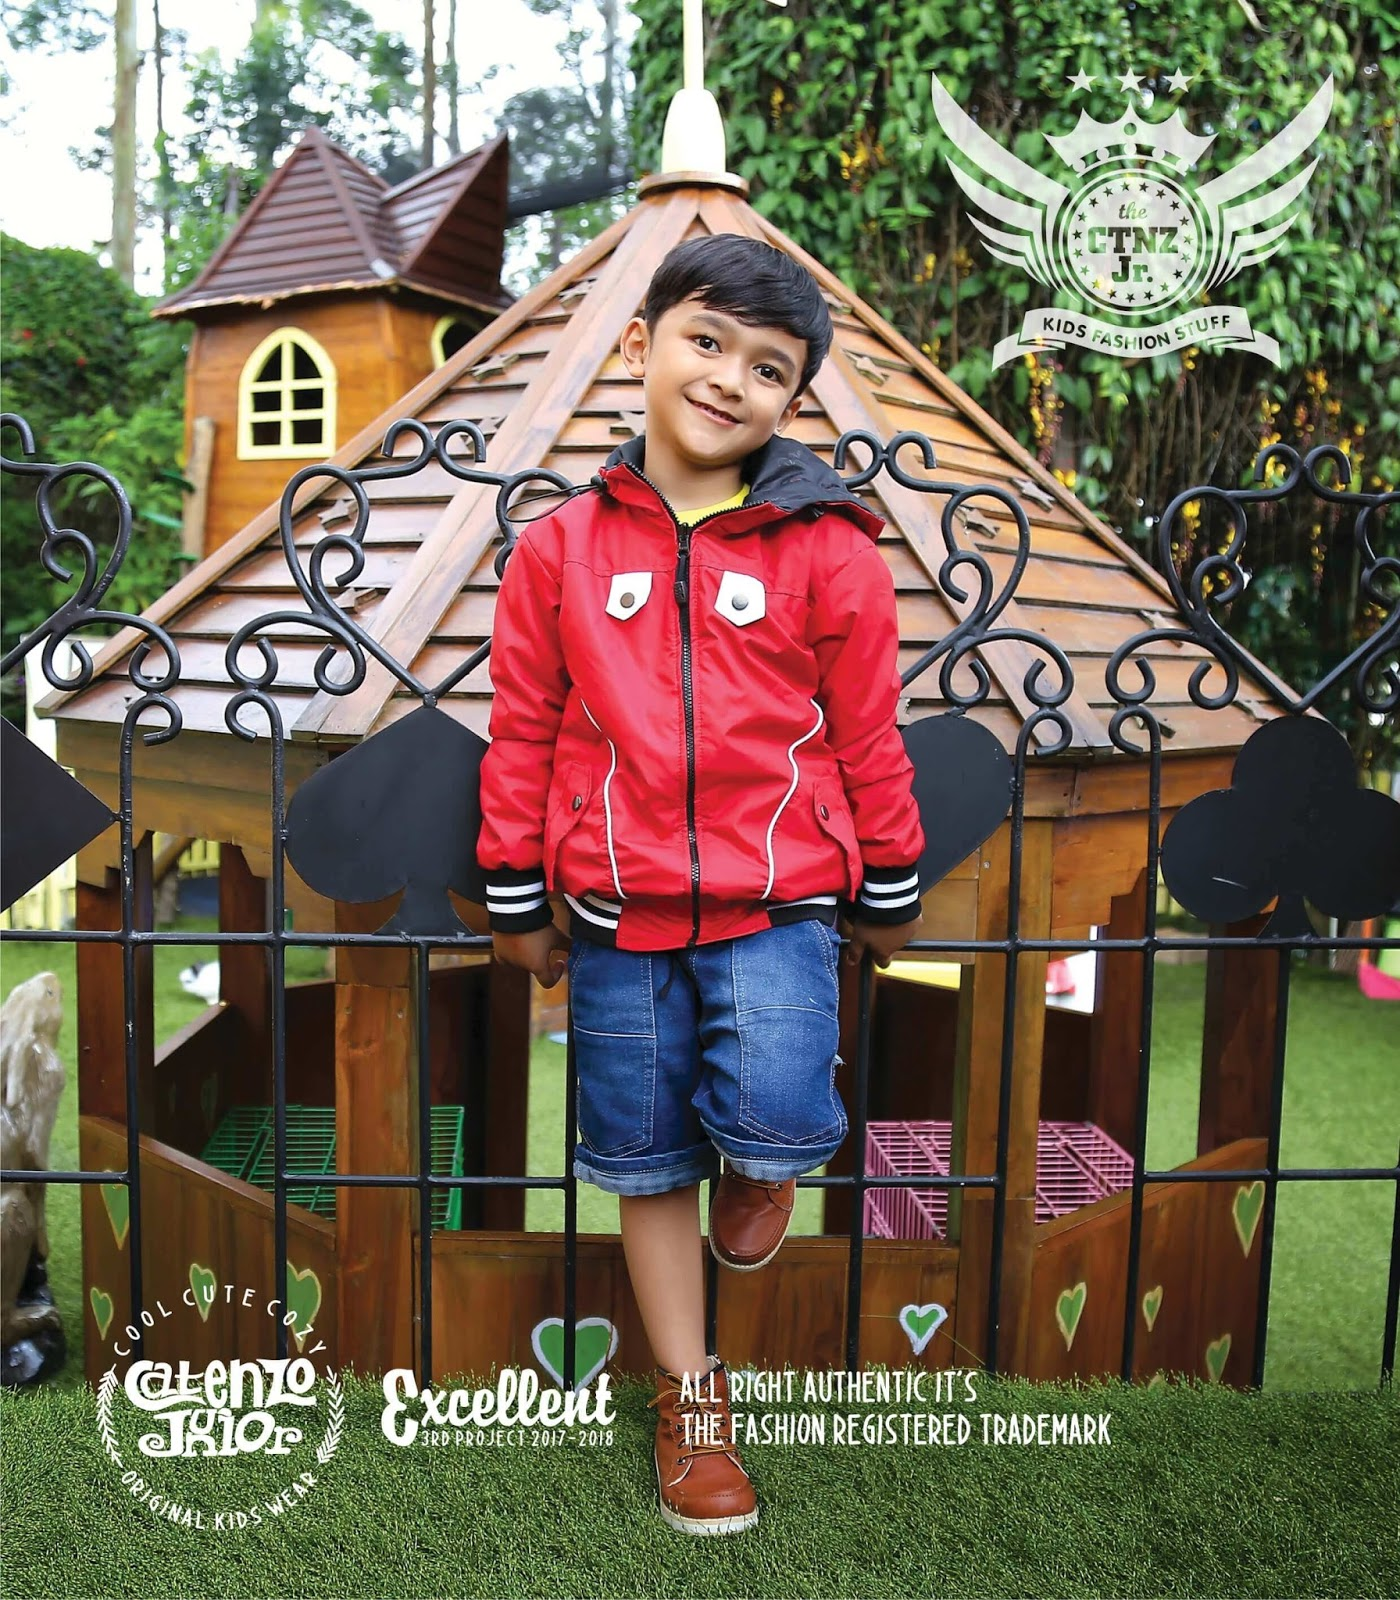 Katalog Catenzo Junior Gerai Mila Fashion Cjr Kids